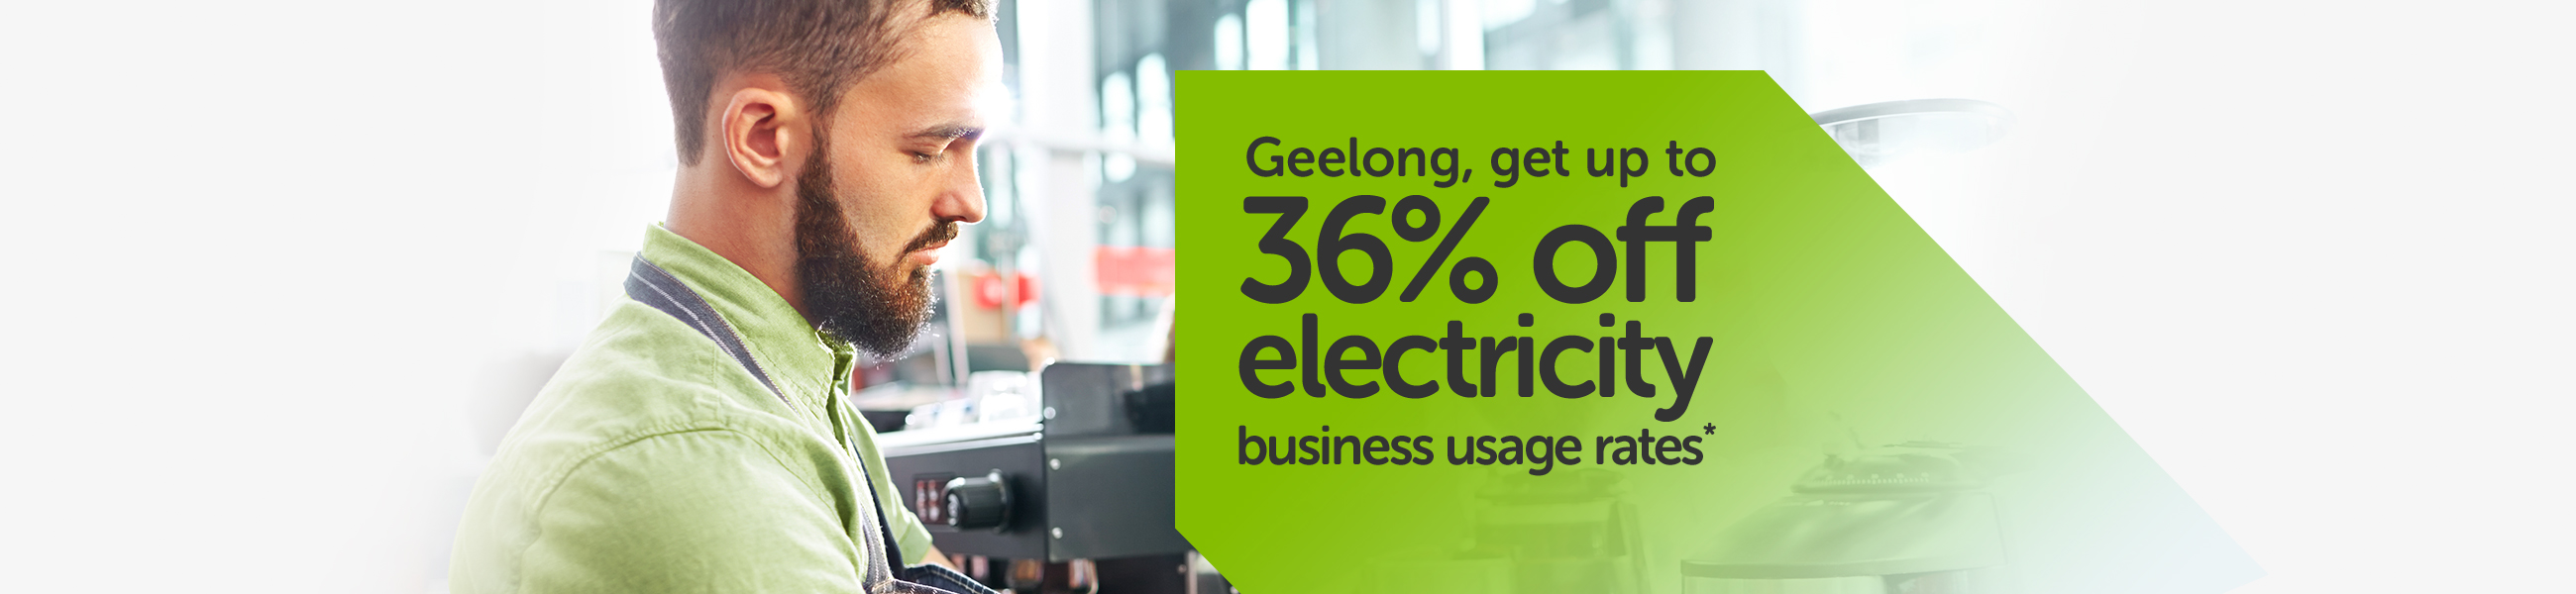 Geelong, get up to 36% off electricity business usage rates*